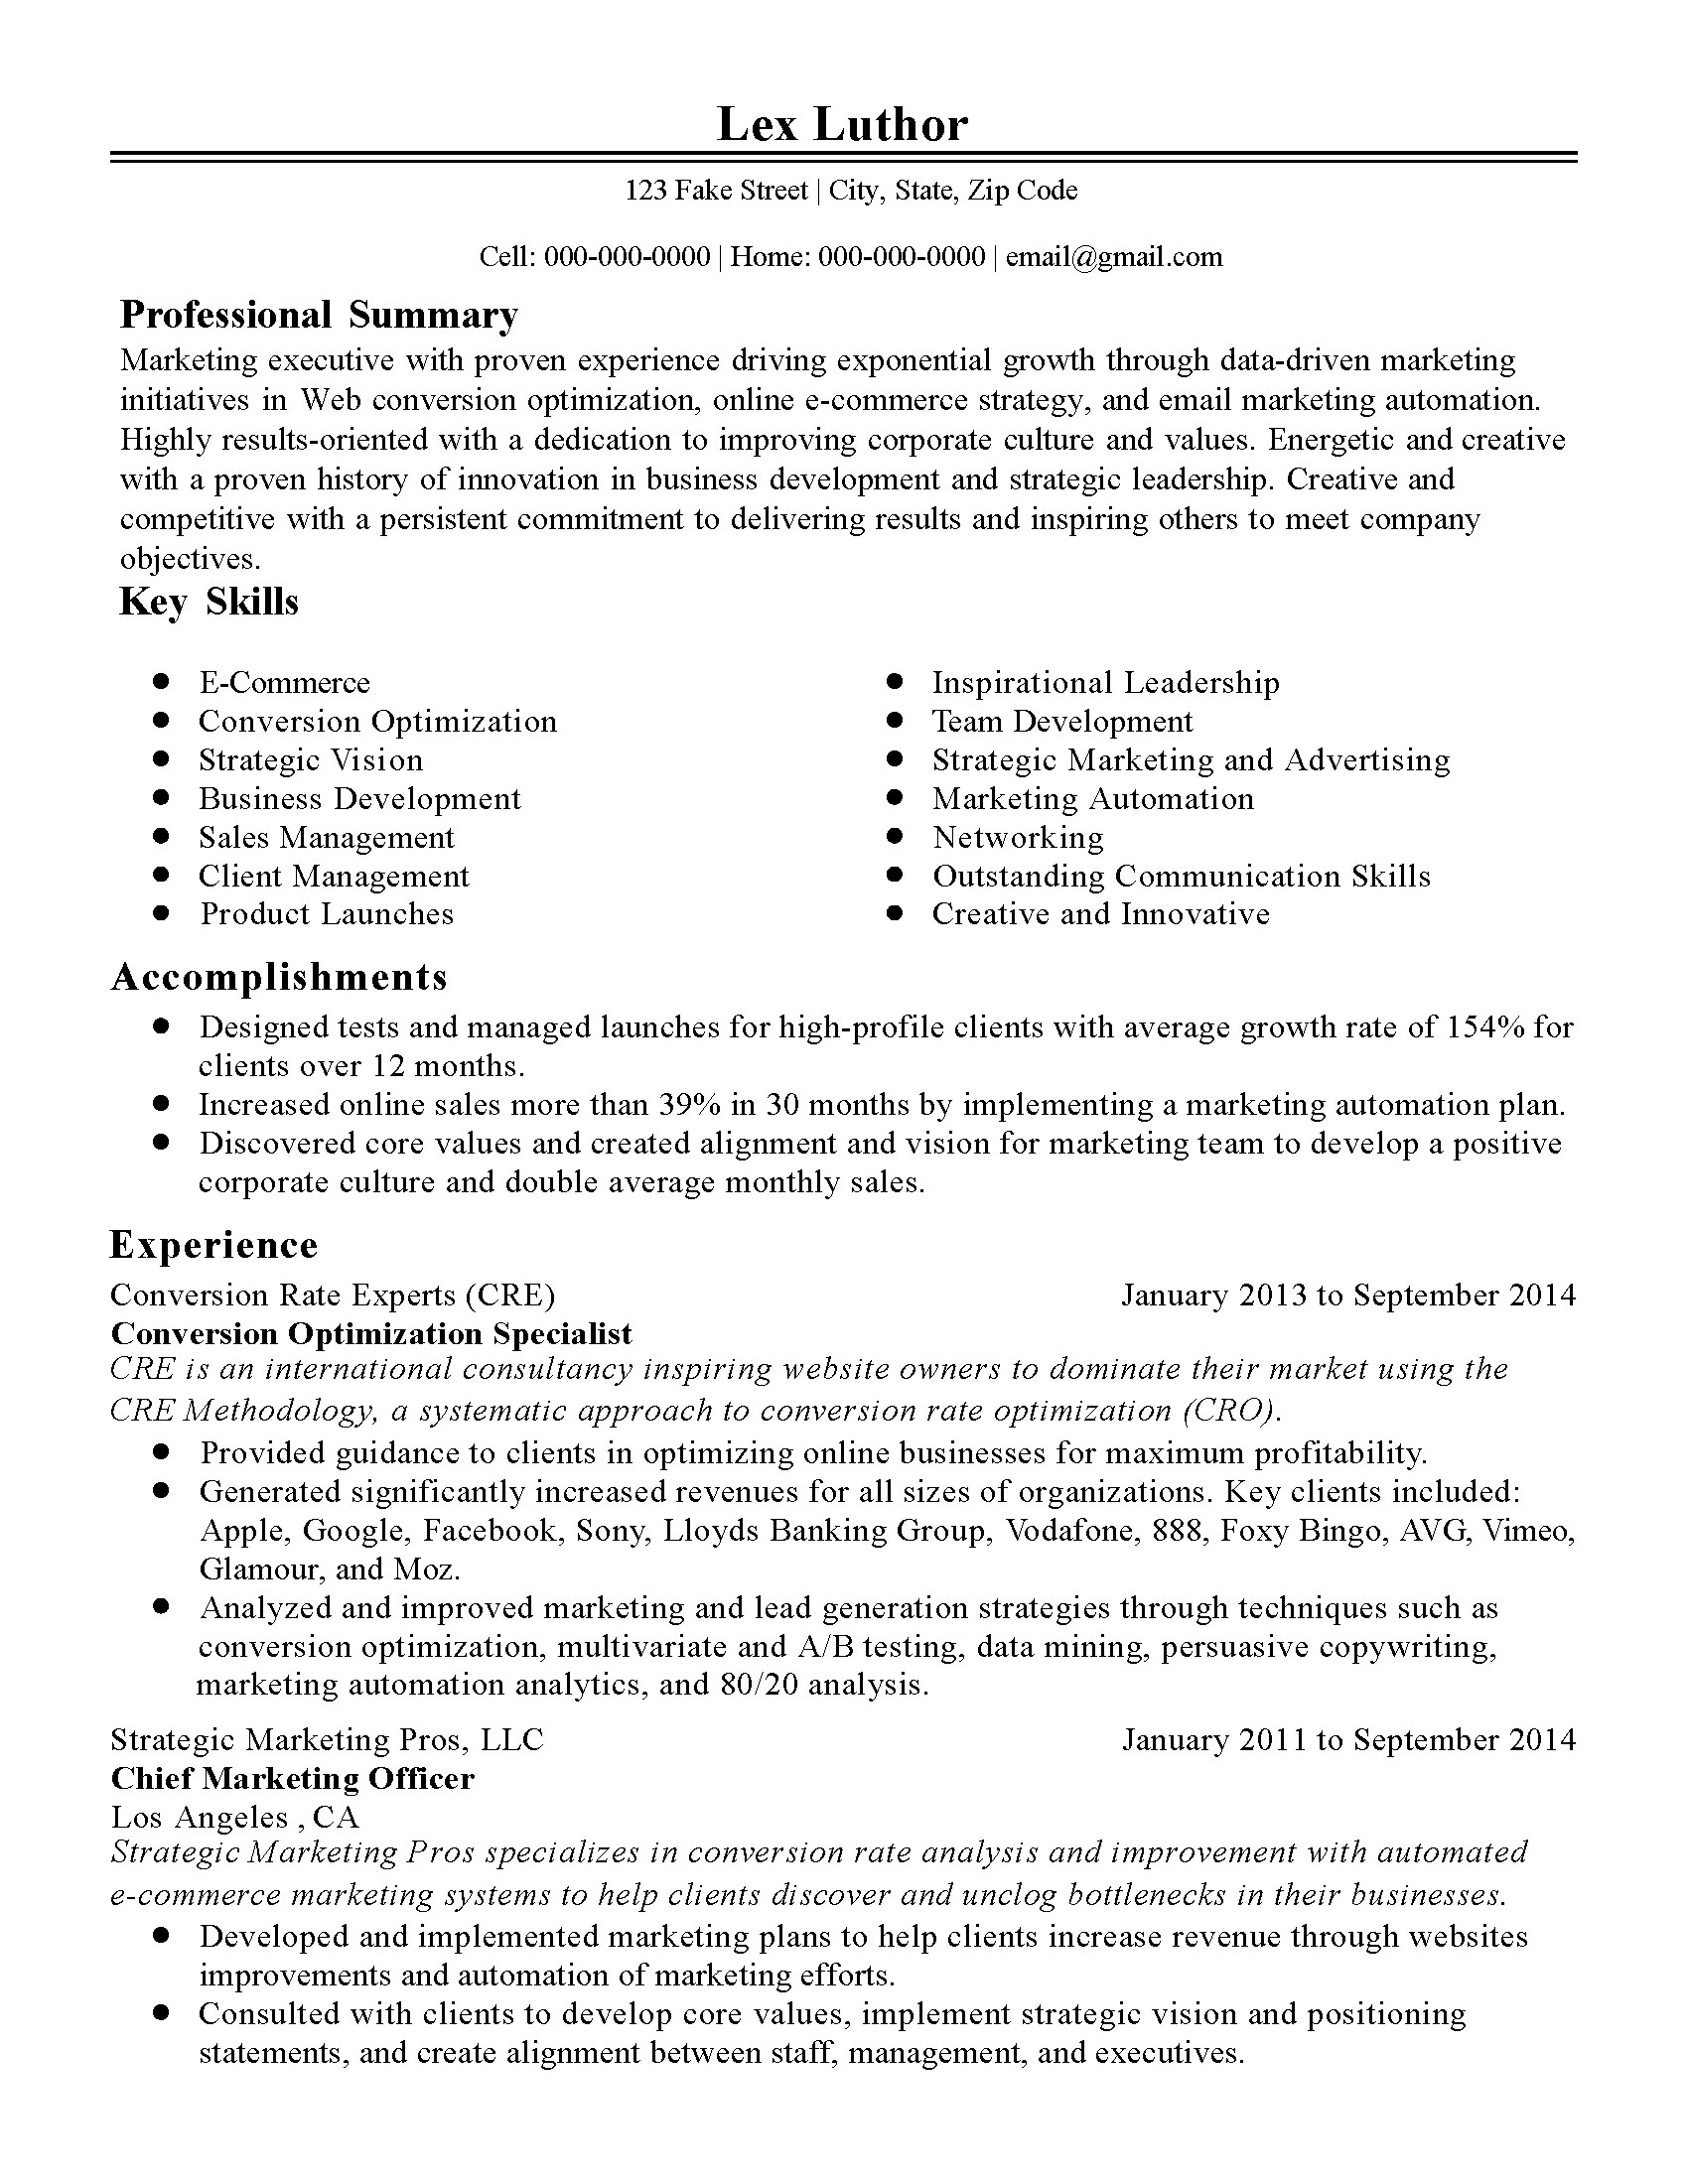 Summary For Marketing Resume Professional Conversion Optimization Specialist Templates